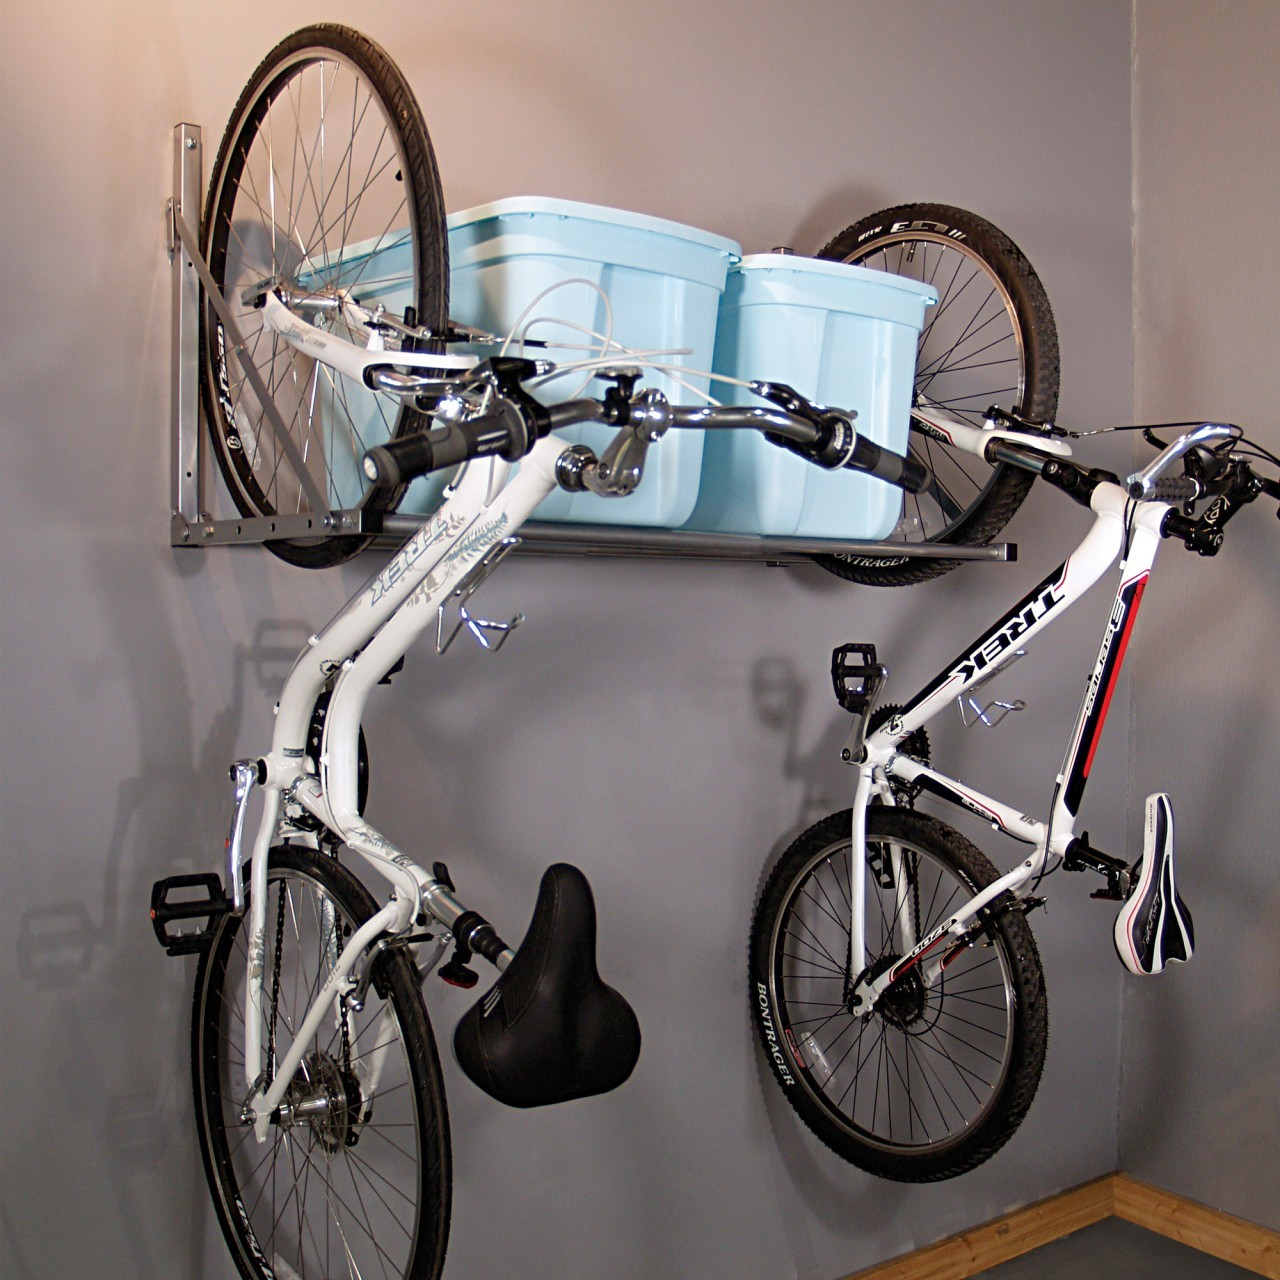 Elegant Deisgn Of The Garage Bike Storage With Black Iron Hanger For The Bikes Put On The Grey Wall Ideas